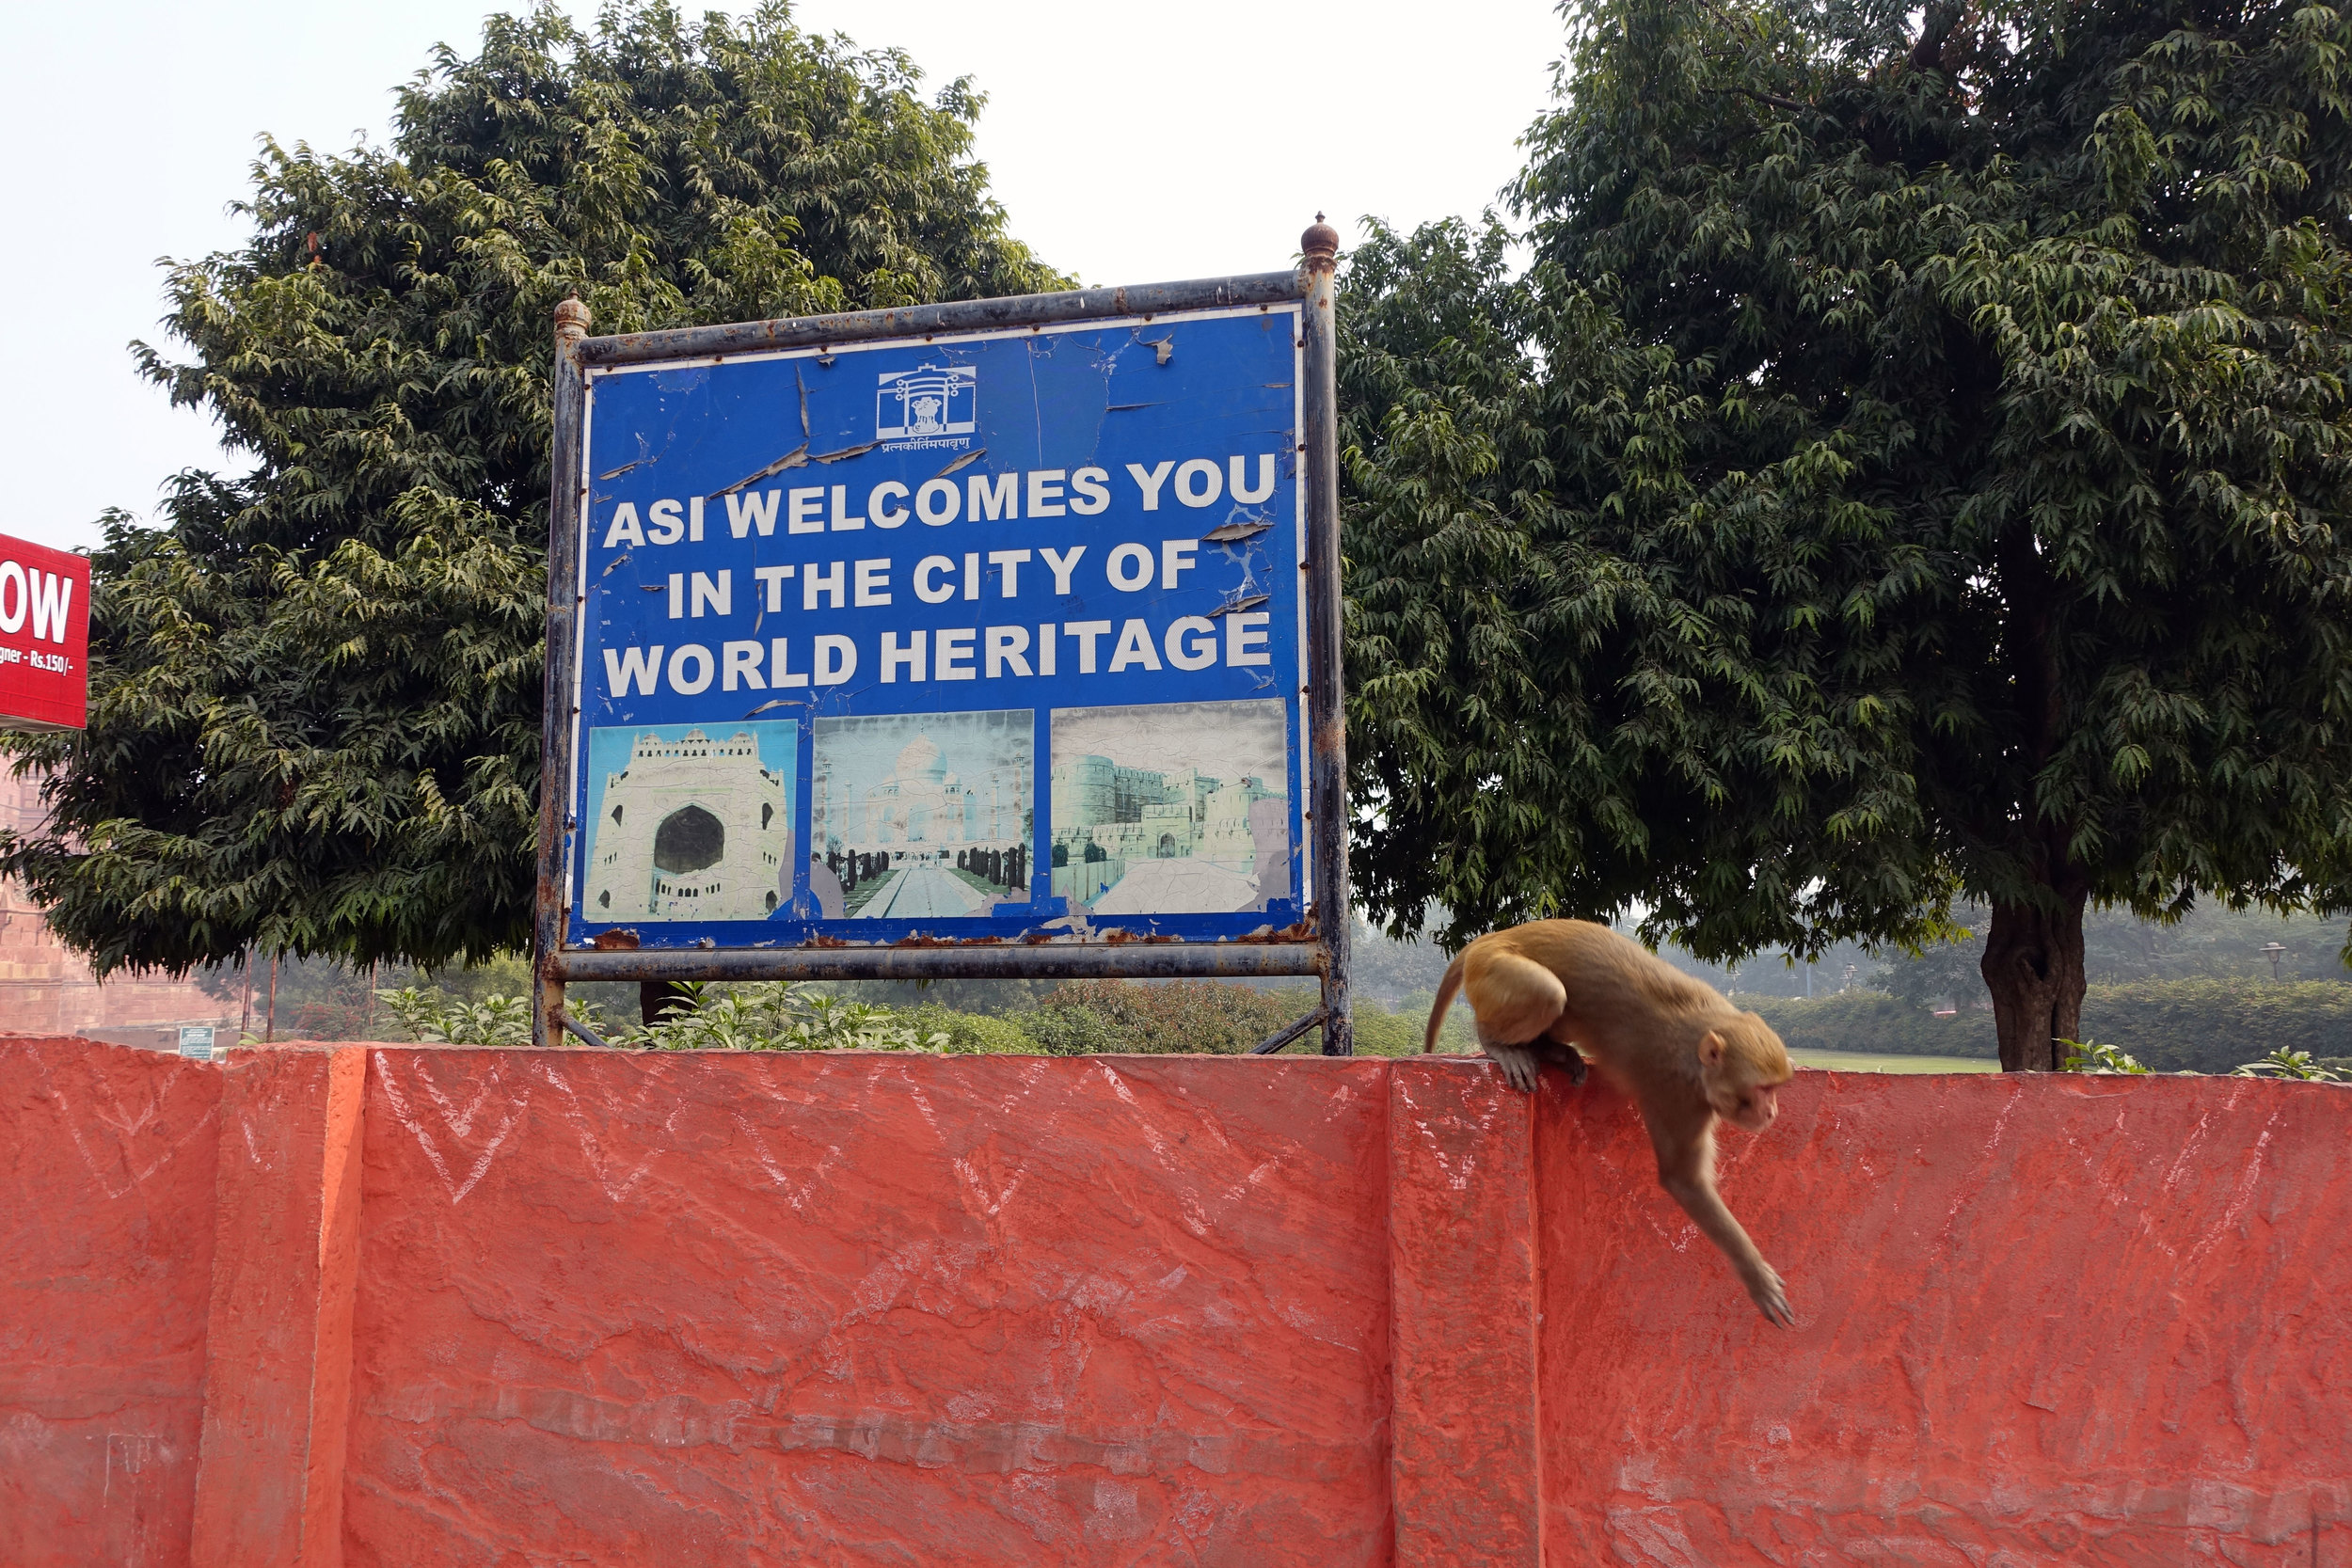 A exit/welcome sign complete with live monkey's designating the Fort as a  World Heritage  landmark